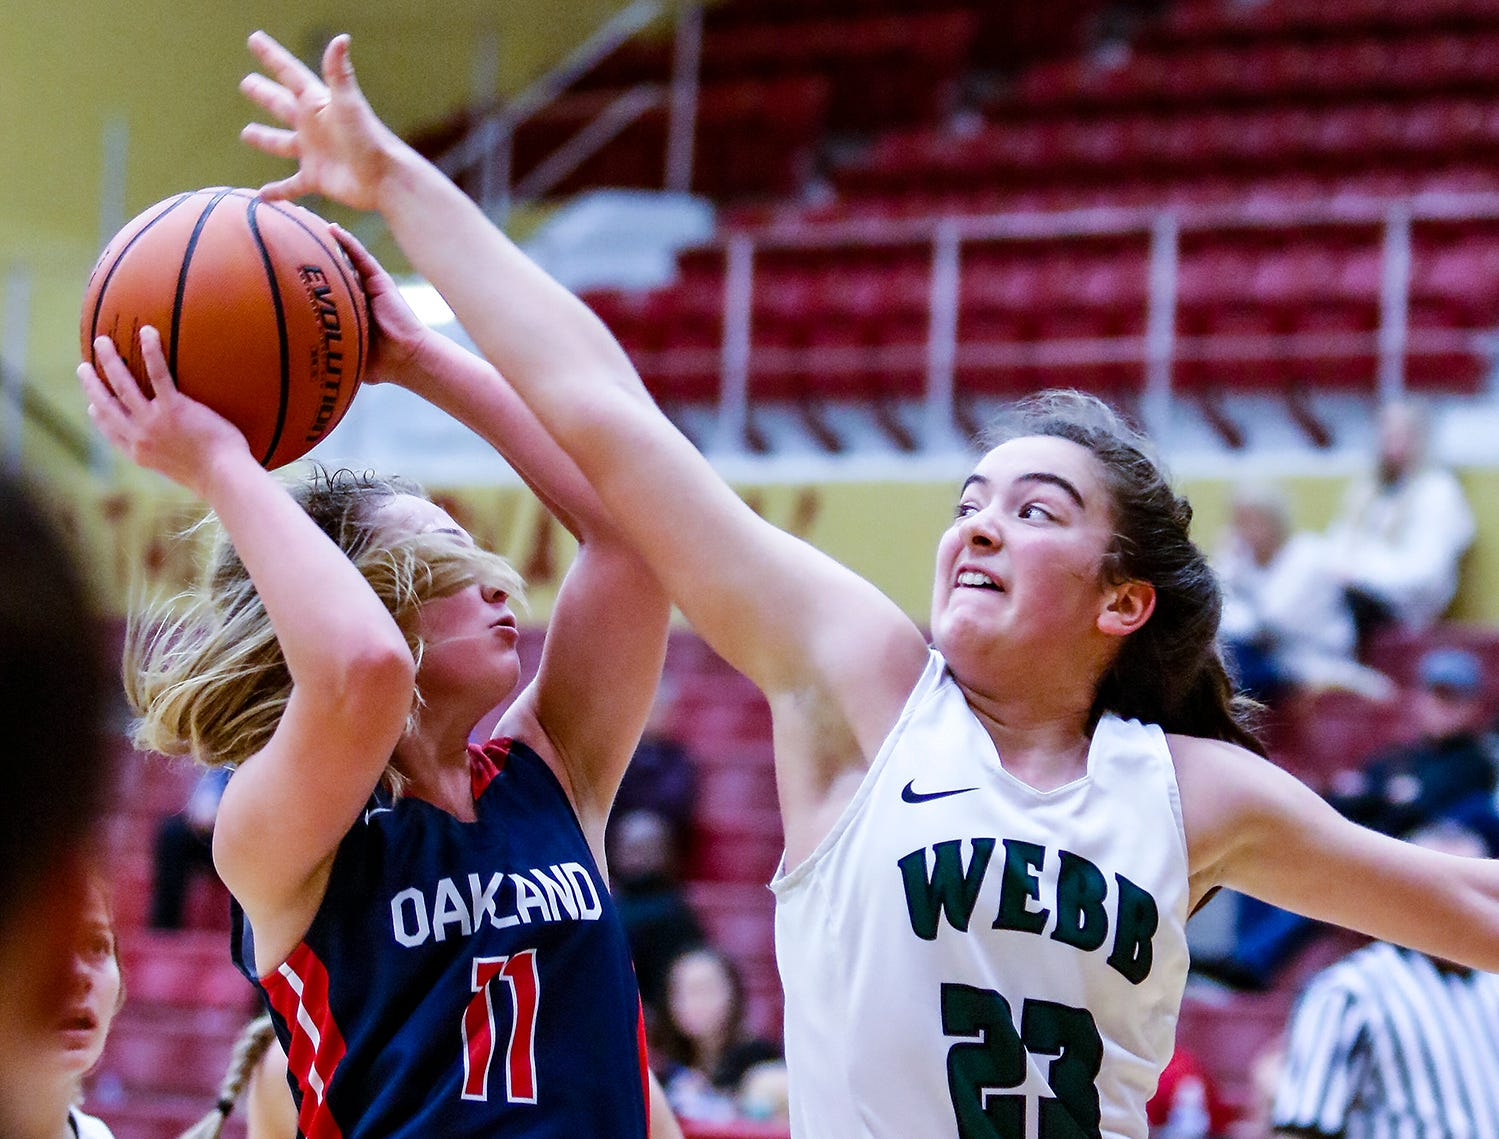 Oakland's Claira McGowan goes for a shot as Webb's Catherine Hendershot defends.